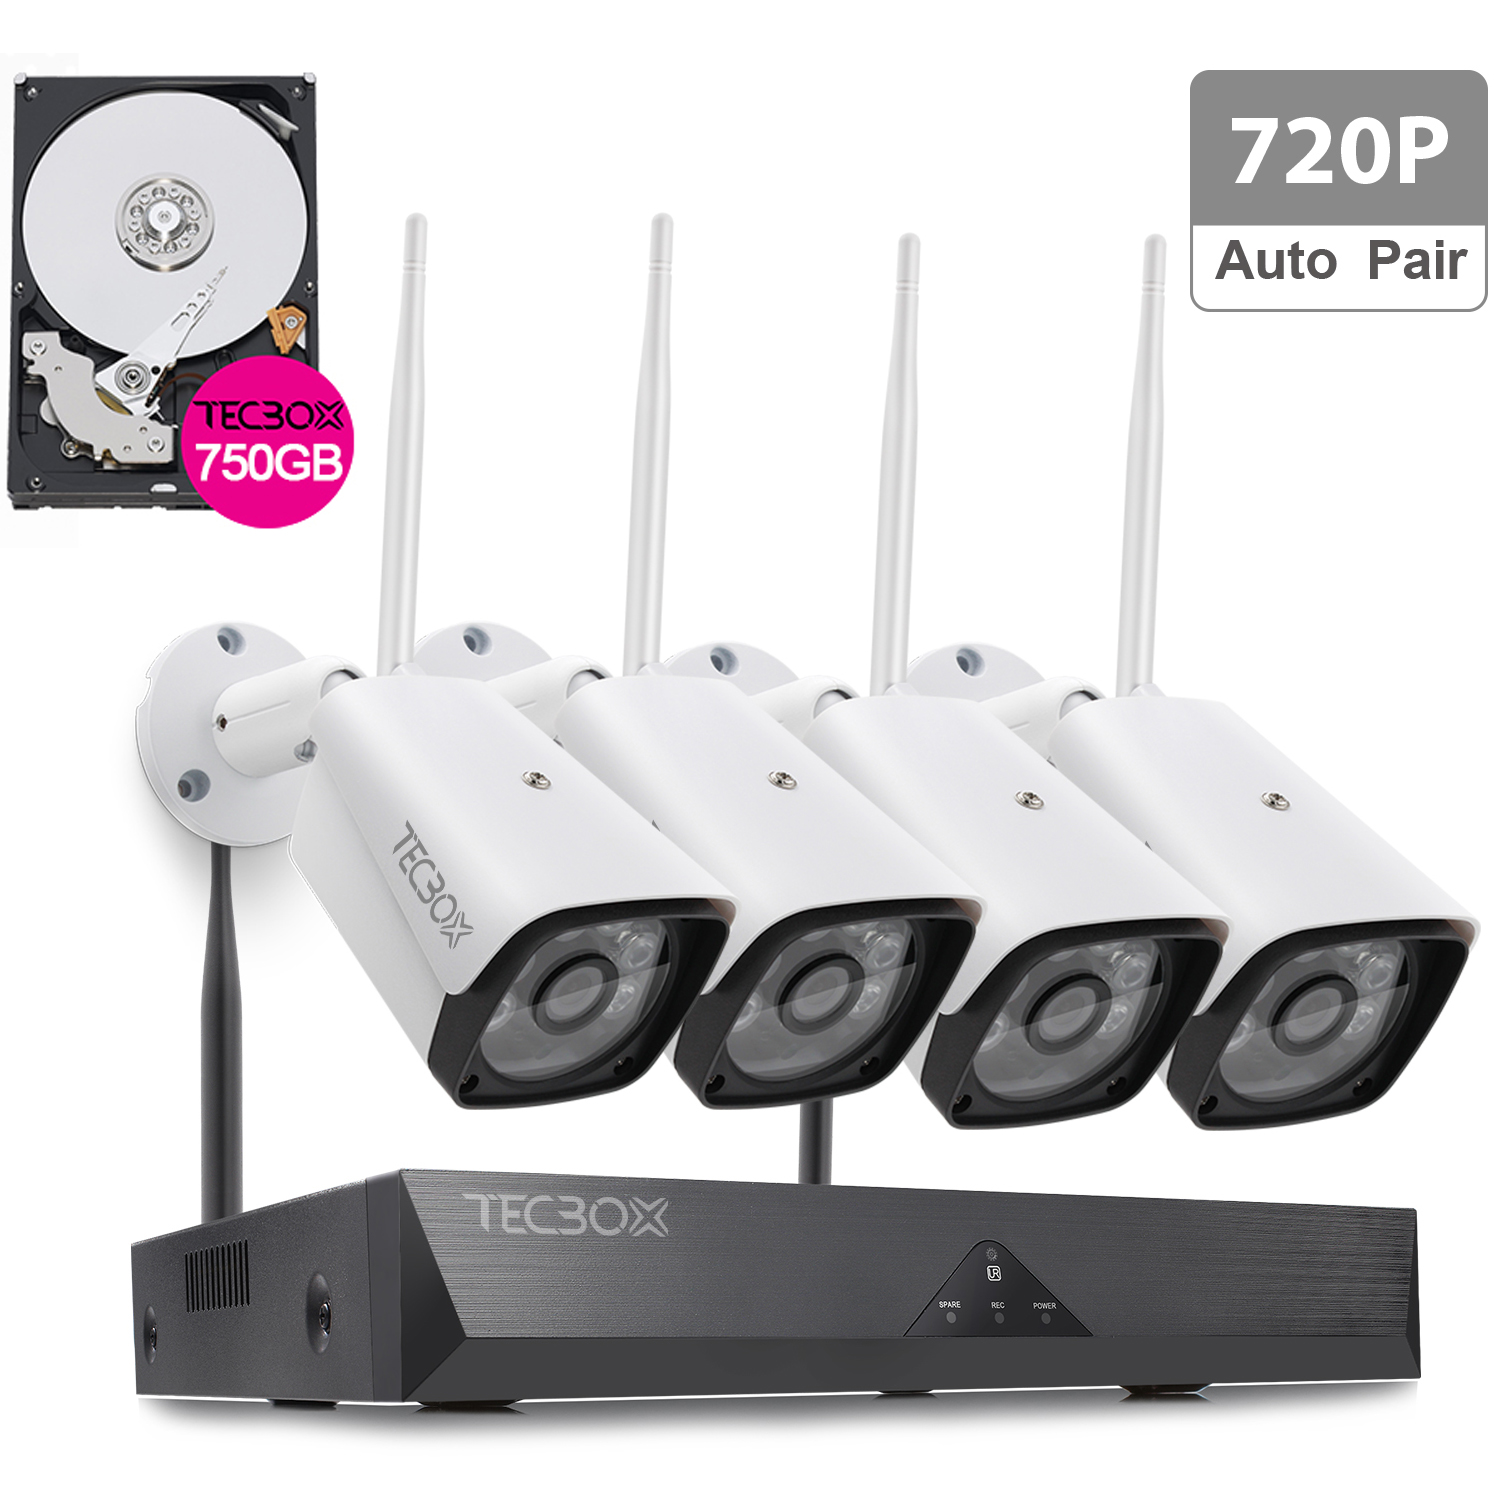 TECBOX 4CH Auto Pair Wireless Security Camera System 720P HDMI NVR, 500GB Hard Drive, 4 x 720P HD Indoor/Outdoor Weatherproof Night Vision Wireless IP Cameras,View Remotely Wifi Security Camera